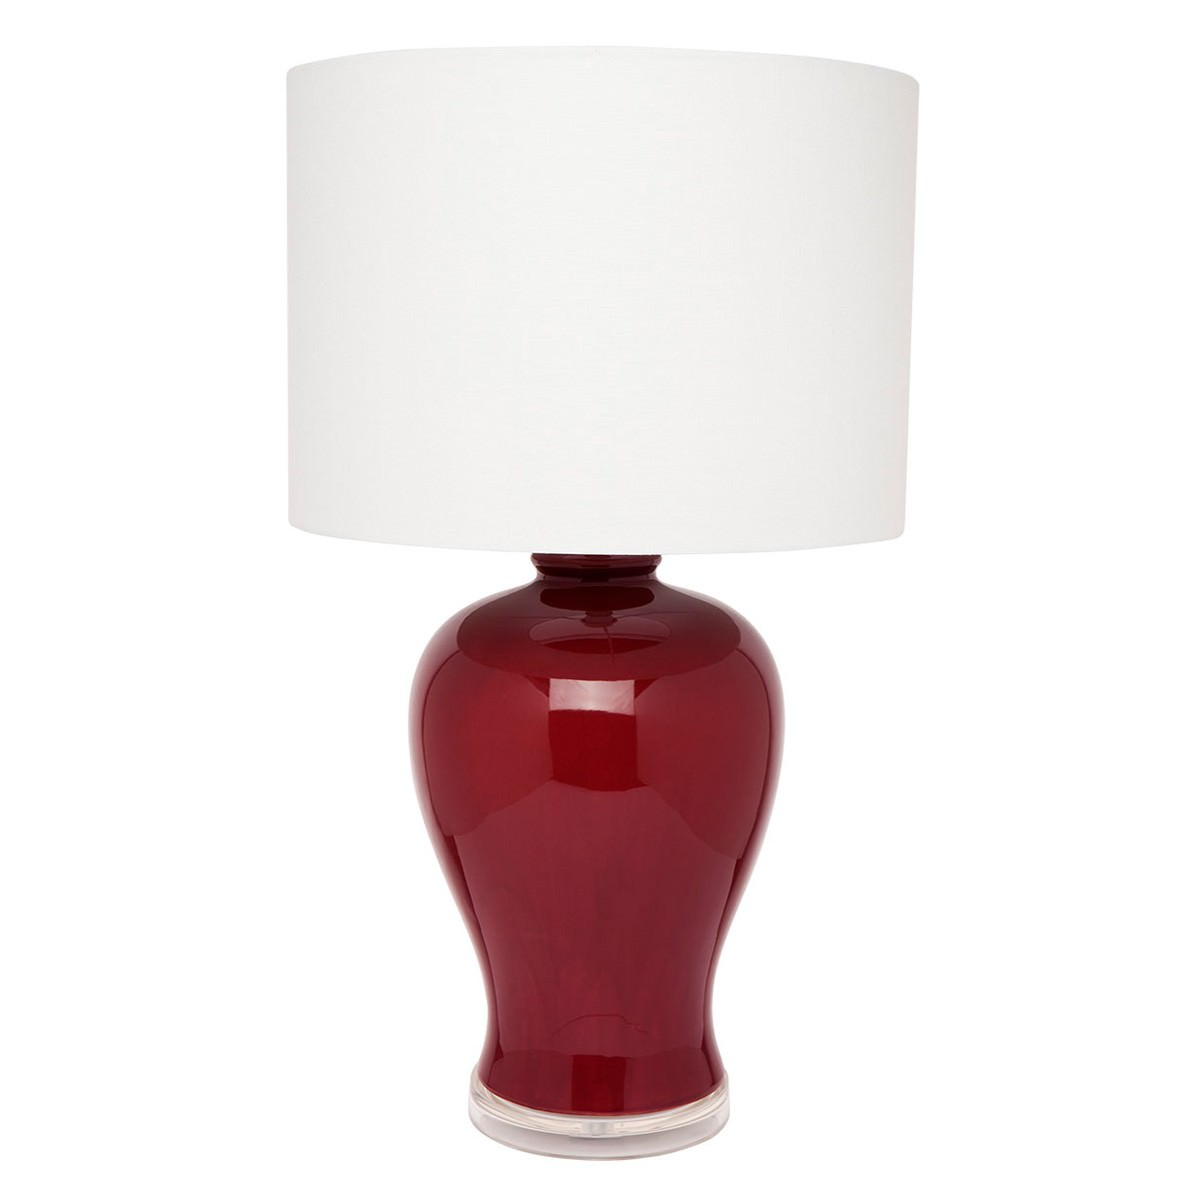 Romeo Ceramic Base Table Lamp